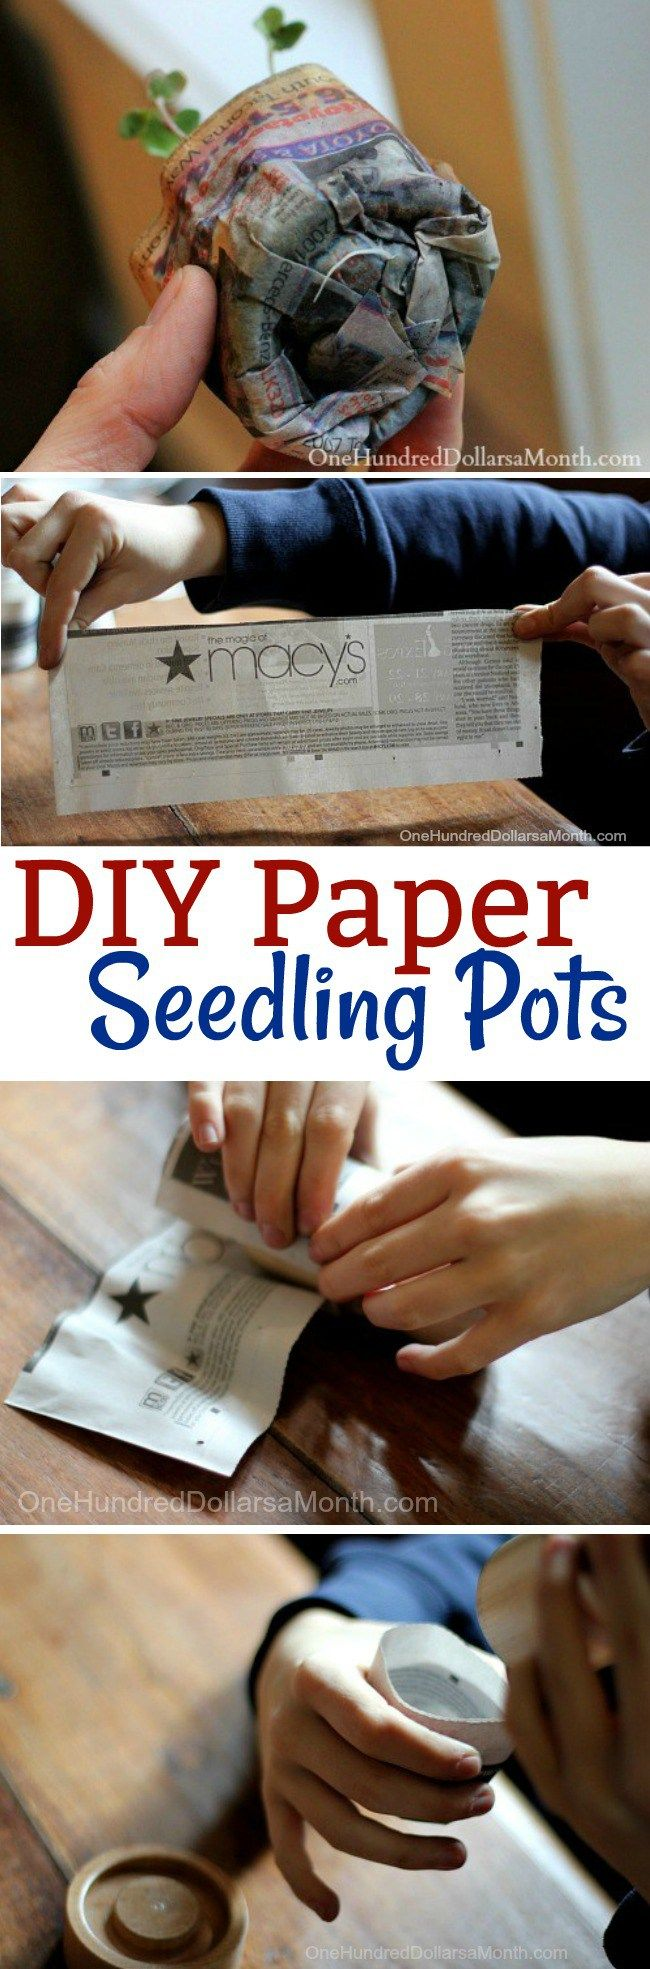 DIY, How to Make Paper Pots, Gardening Tips, Gardening Container Ideas, Starting Seeds, Starting Seedlings, Recycled Crafts, Garden crafts for Kids